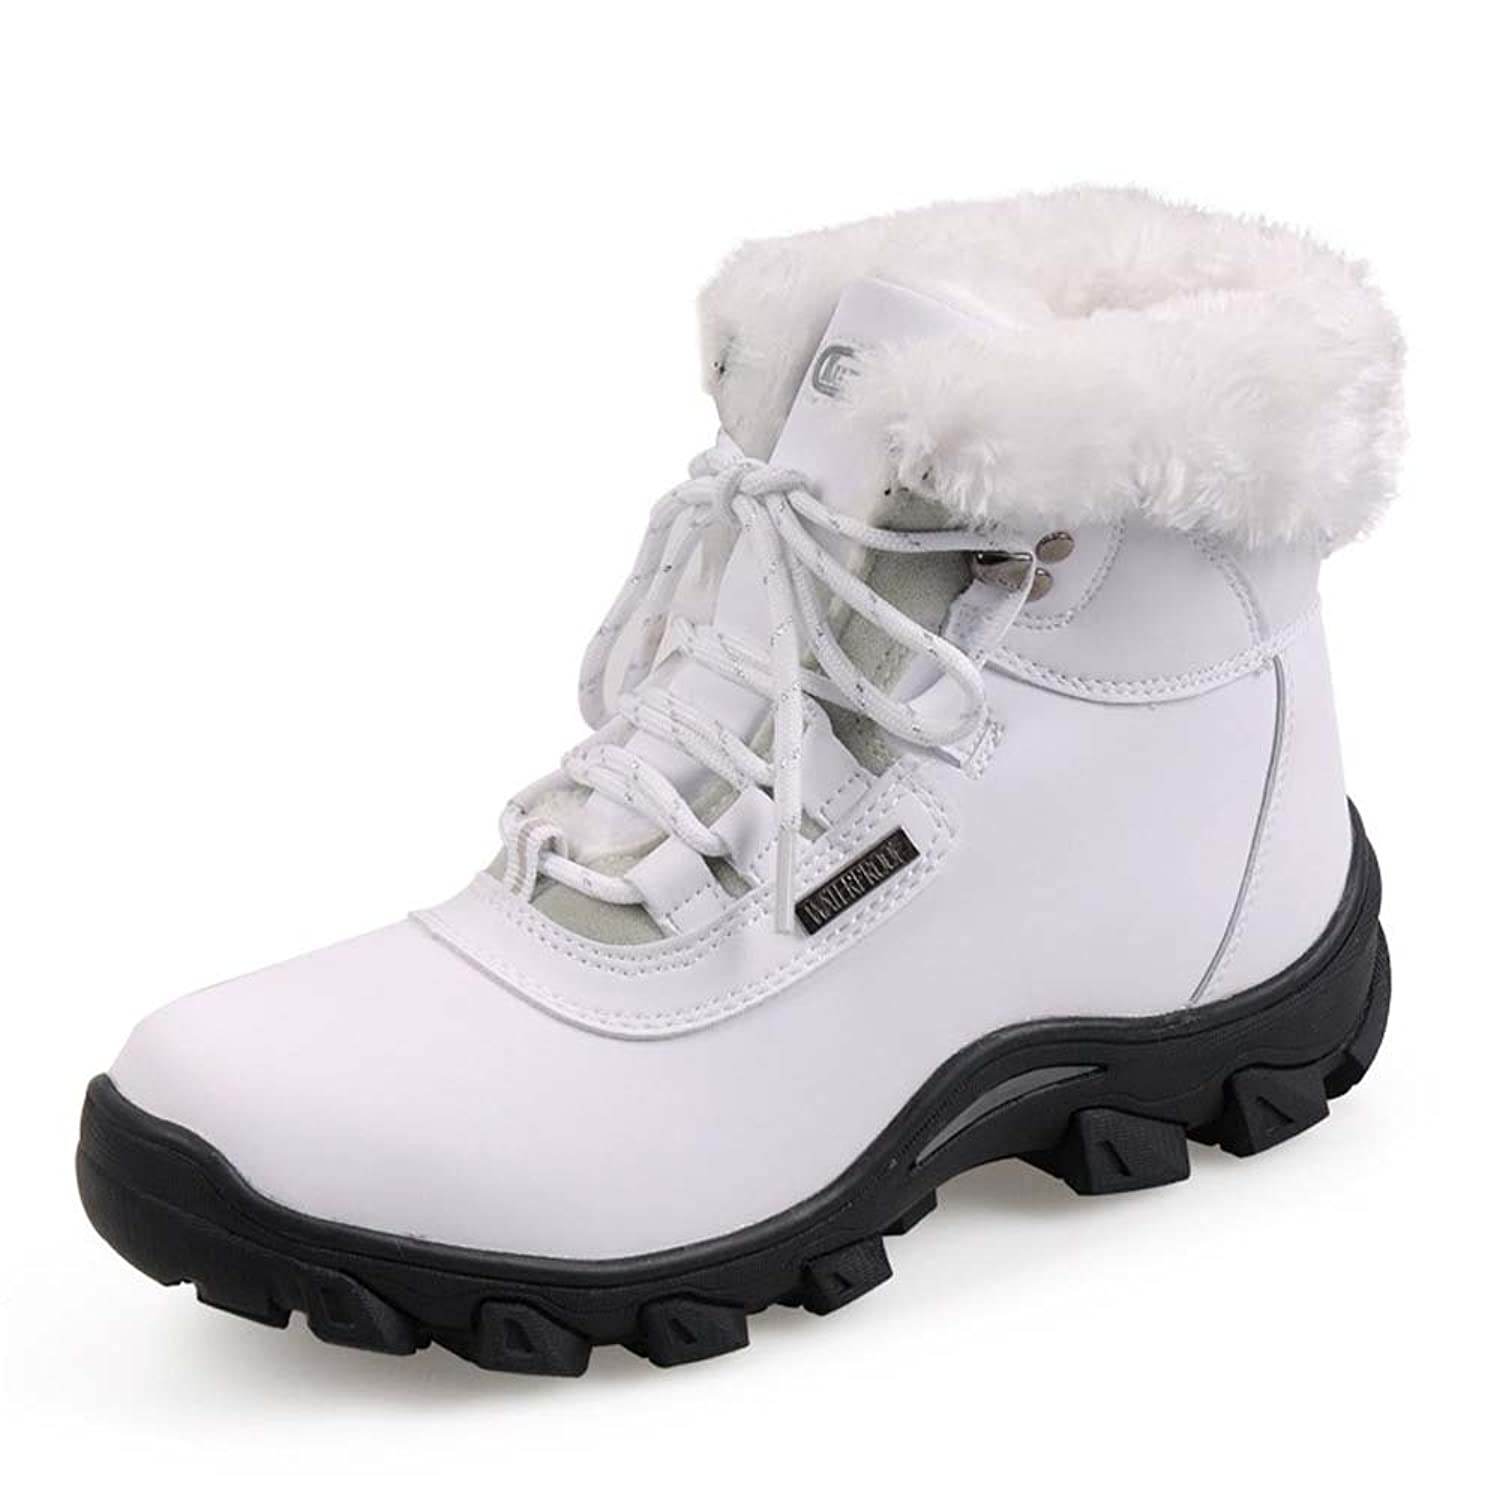 Piggy2gether - Women's Microfiber Leather Waterproof Warm Winter Shoes Snow Boots (White, Size 6.5)